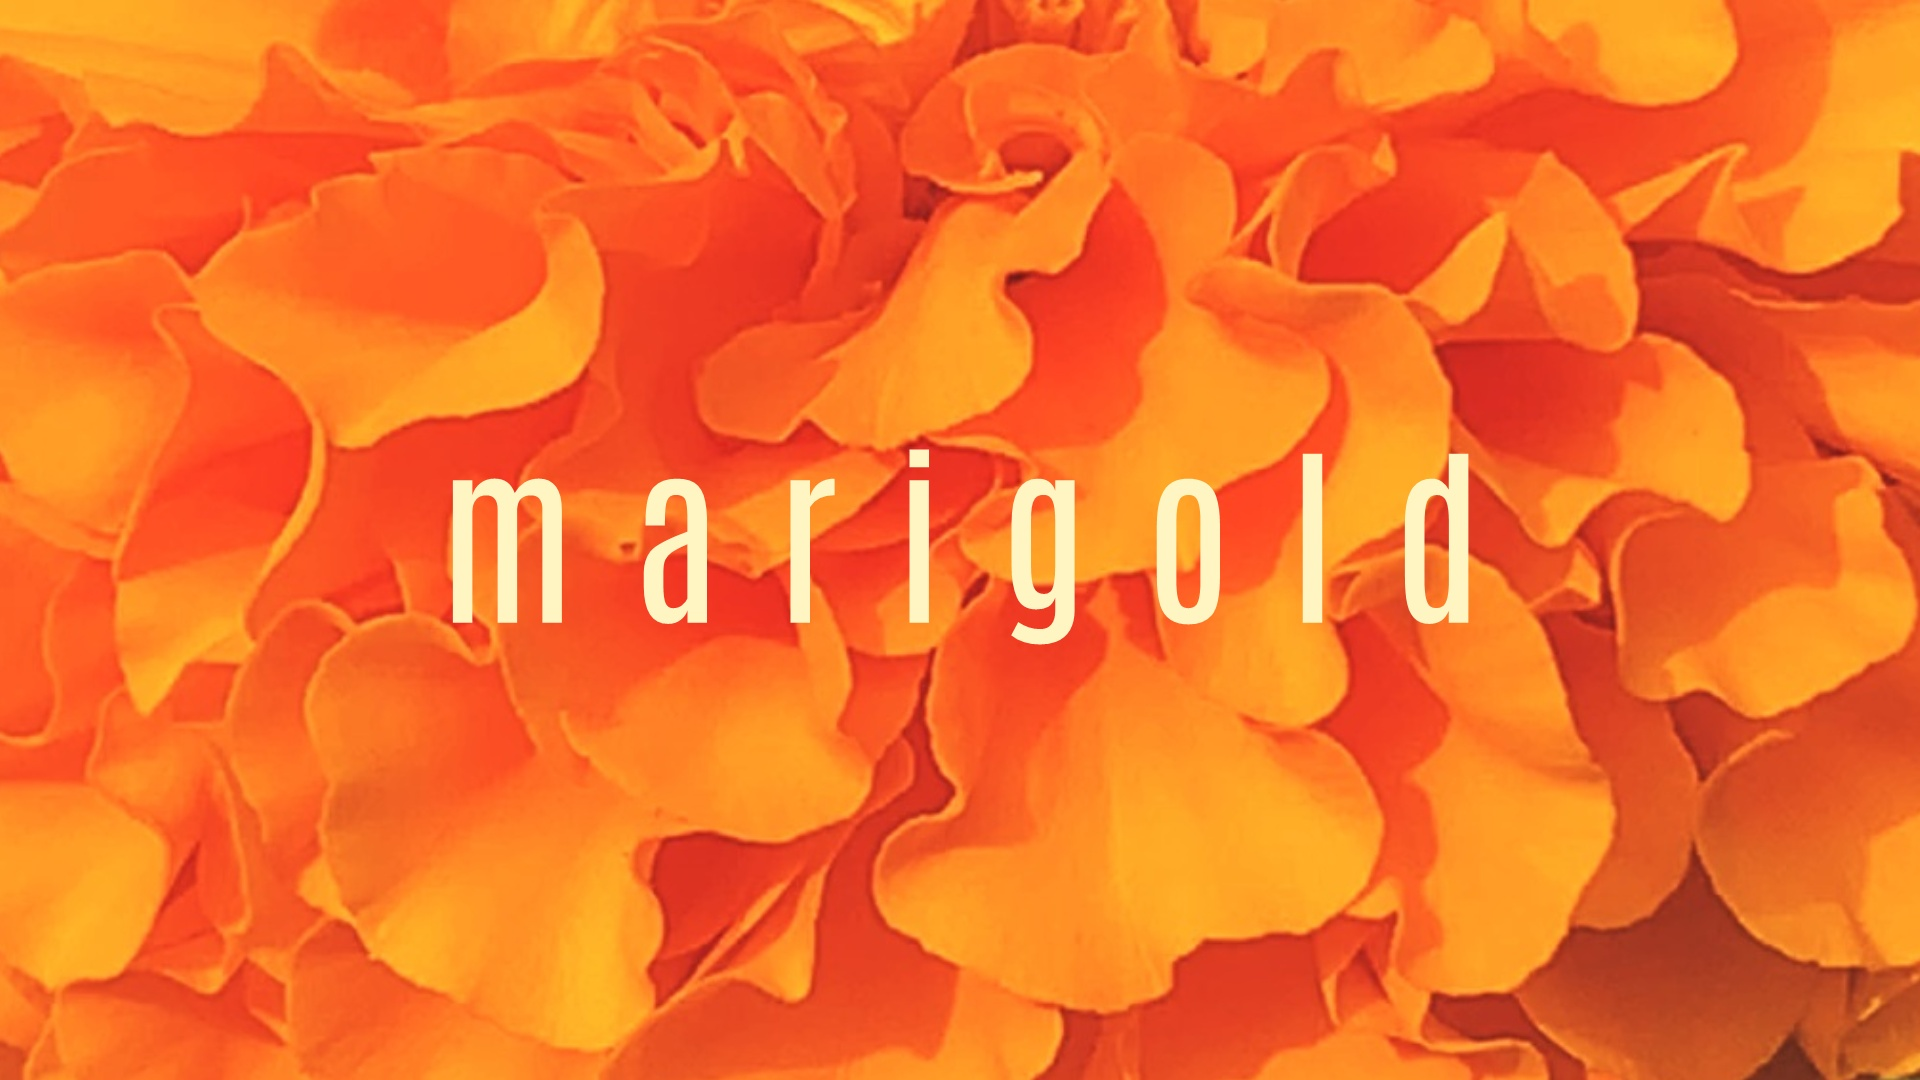 Ode to a Marigold